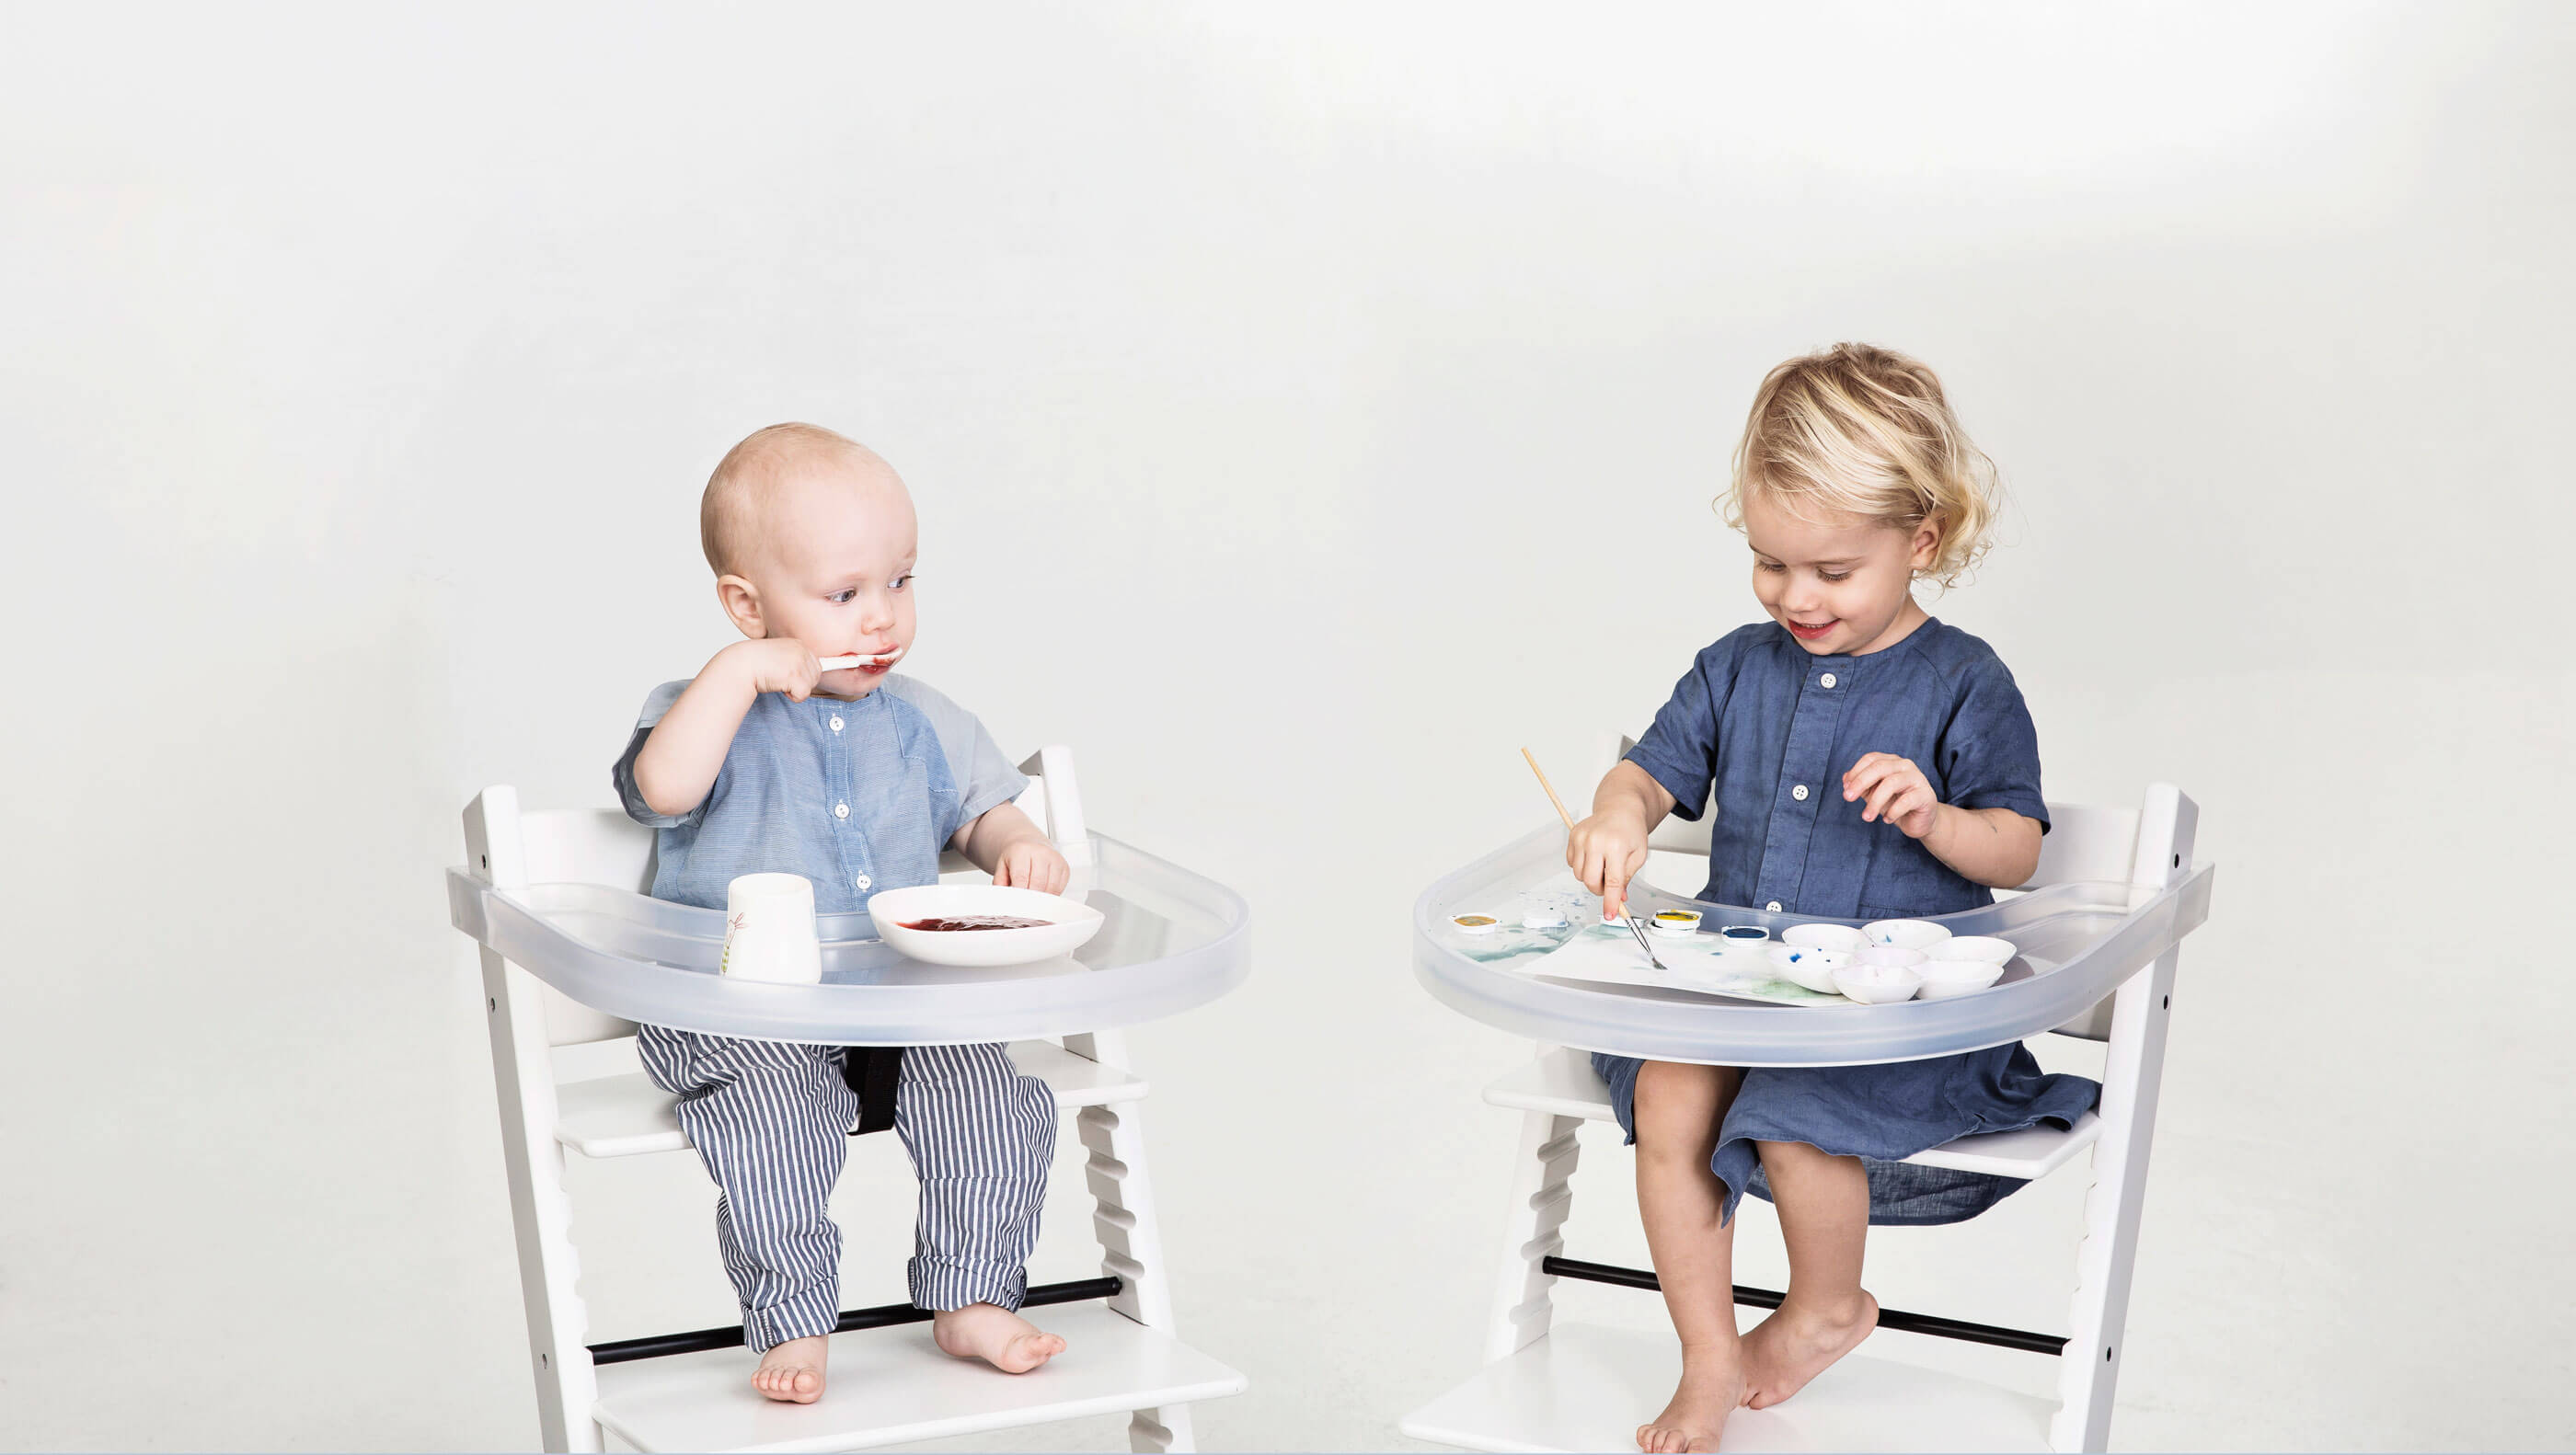 stokke high chair tray saarinen tulip table and chairs playtray der tisch passend für den tripp trapp stuhl